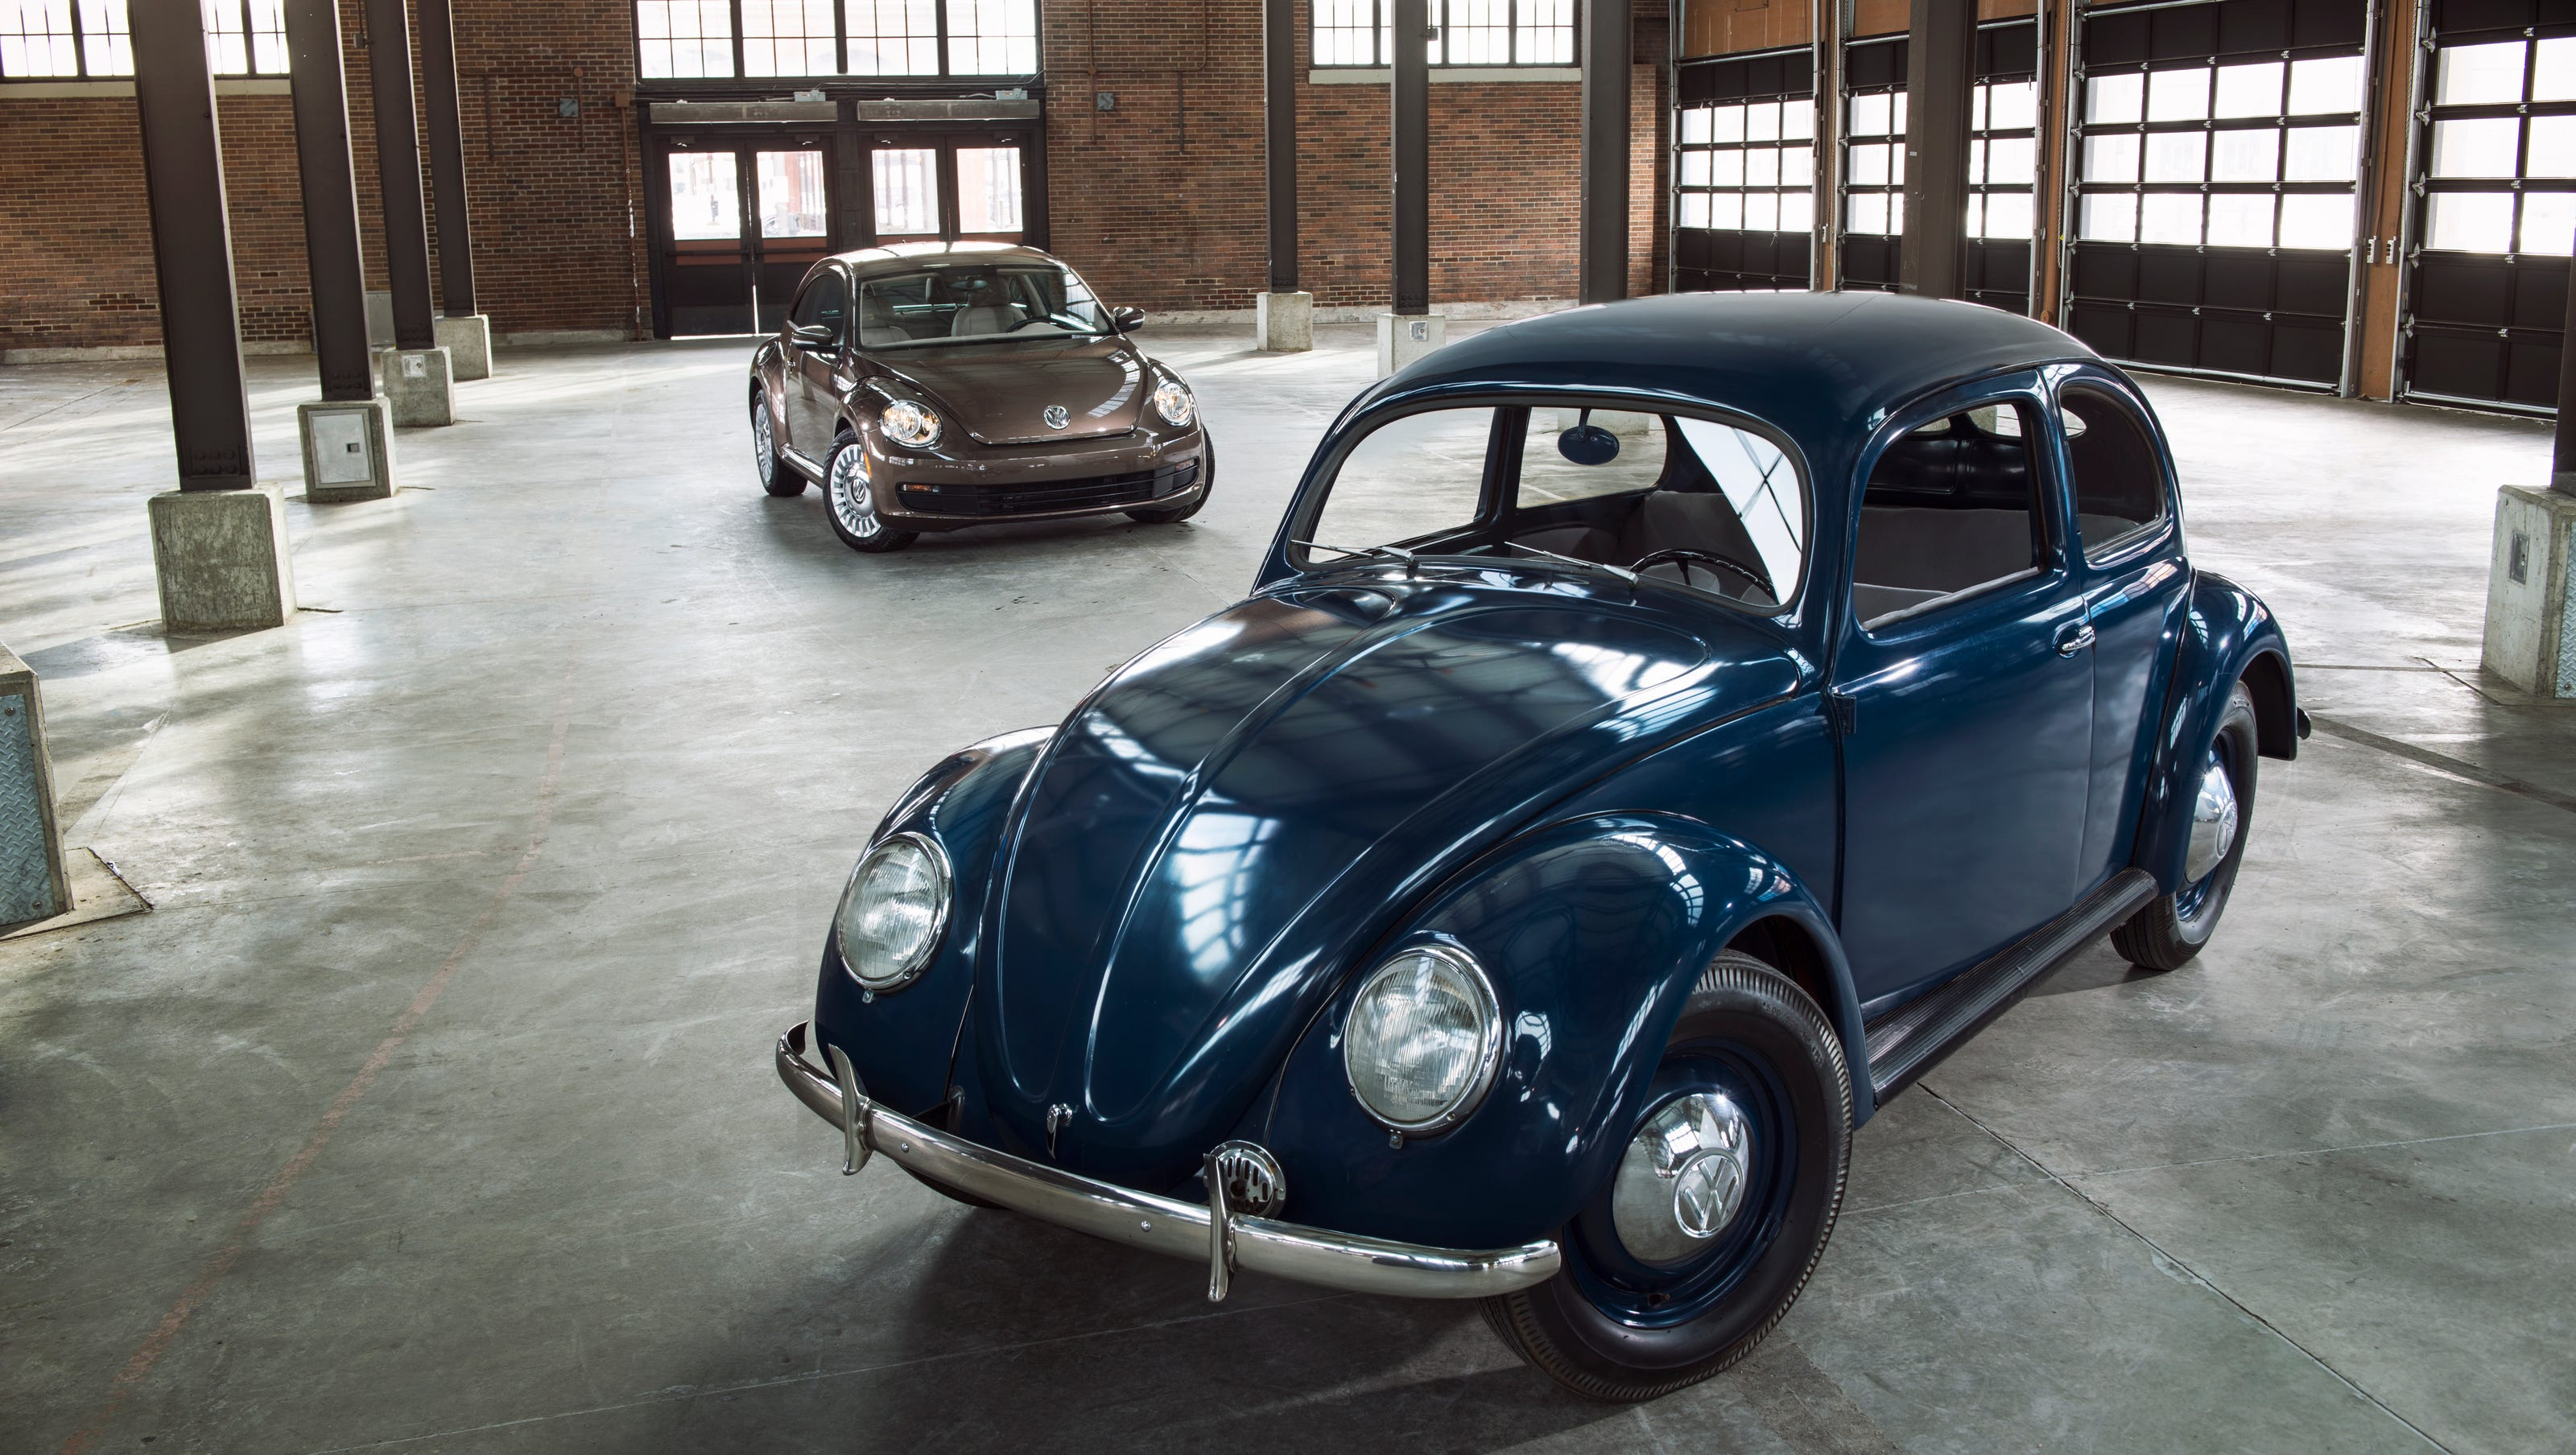 2019 Vw Beetle >> Volkswagen Beetle killed: VW to end Bug production in 2019